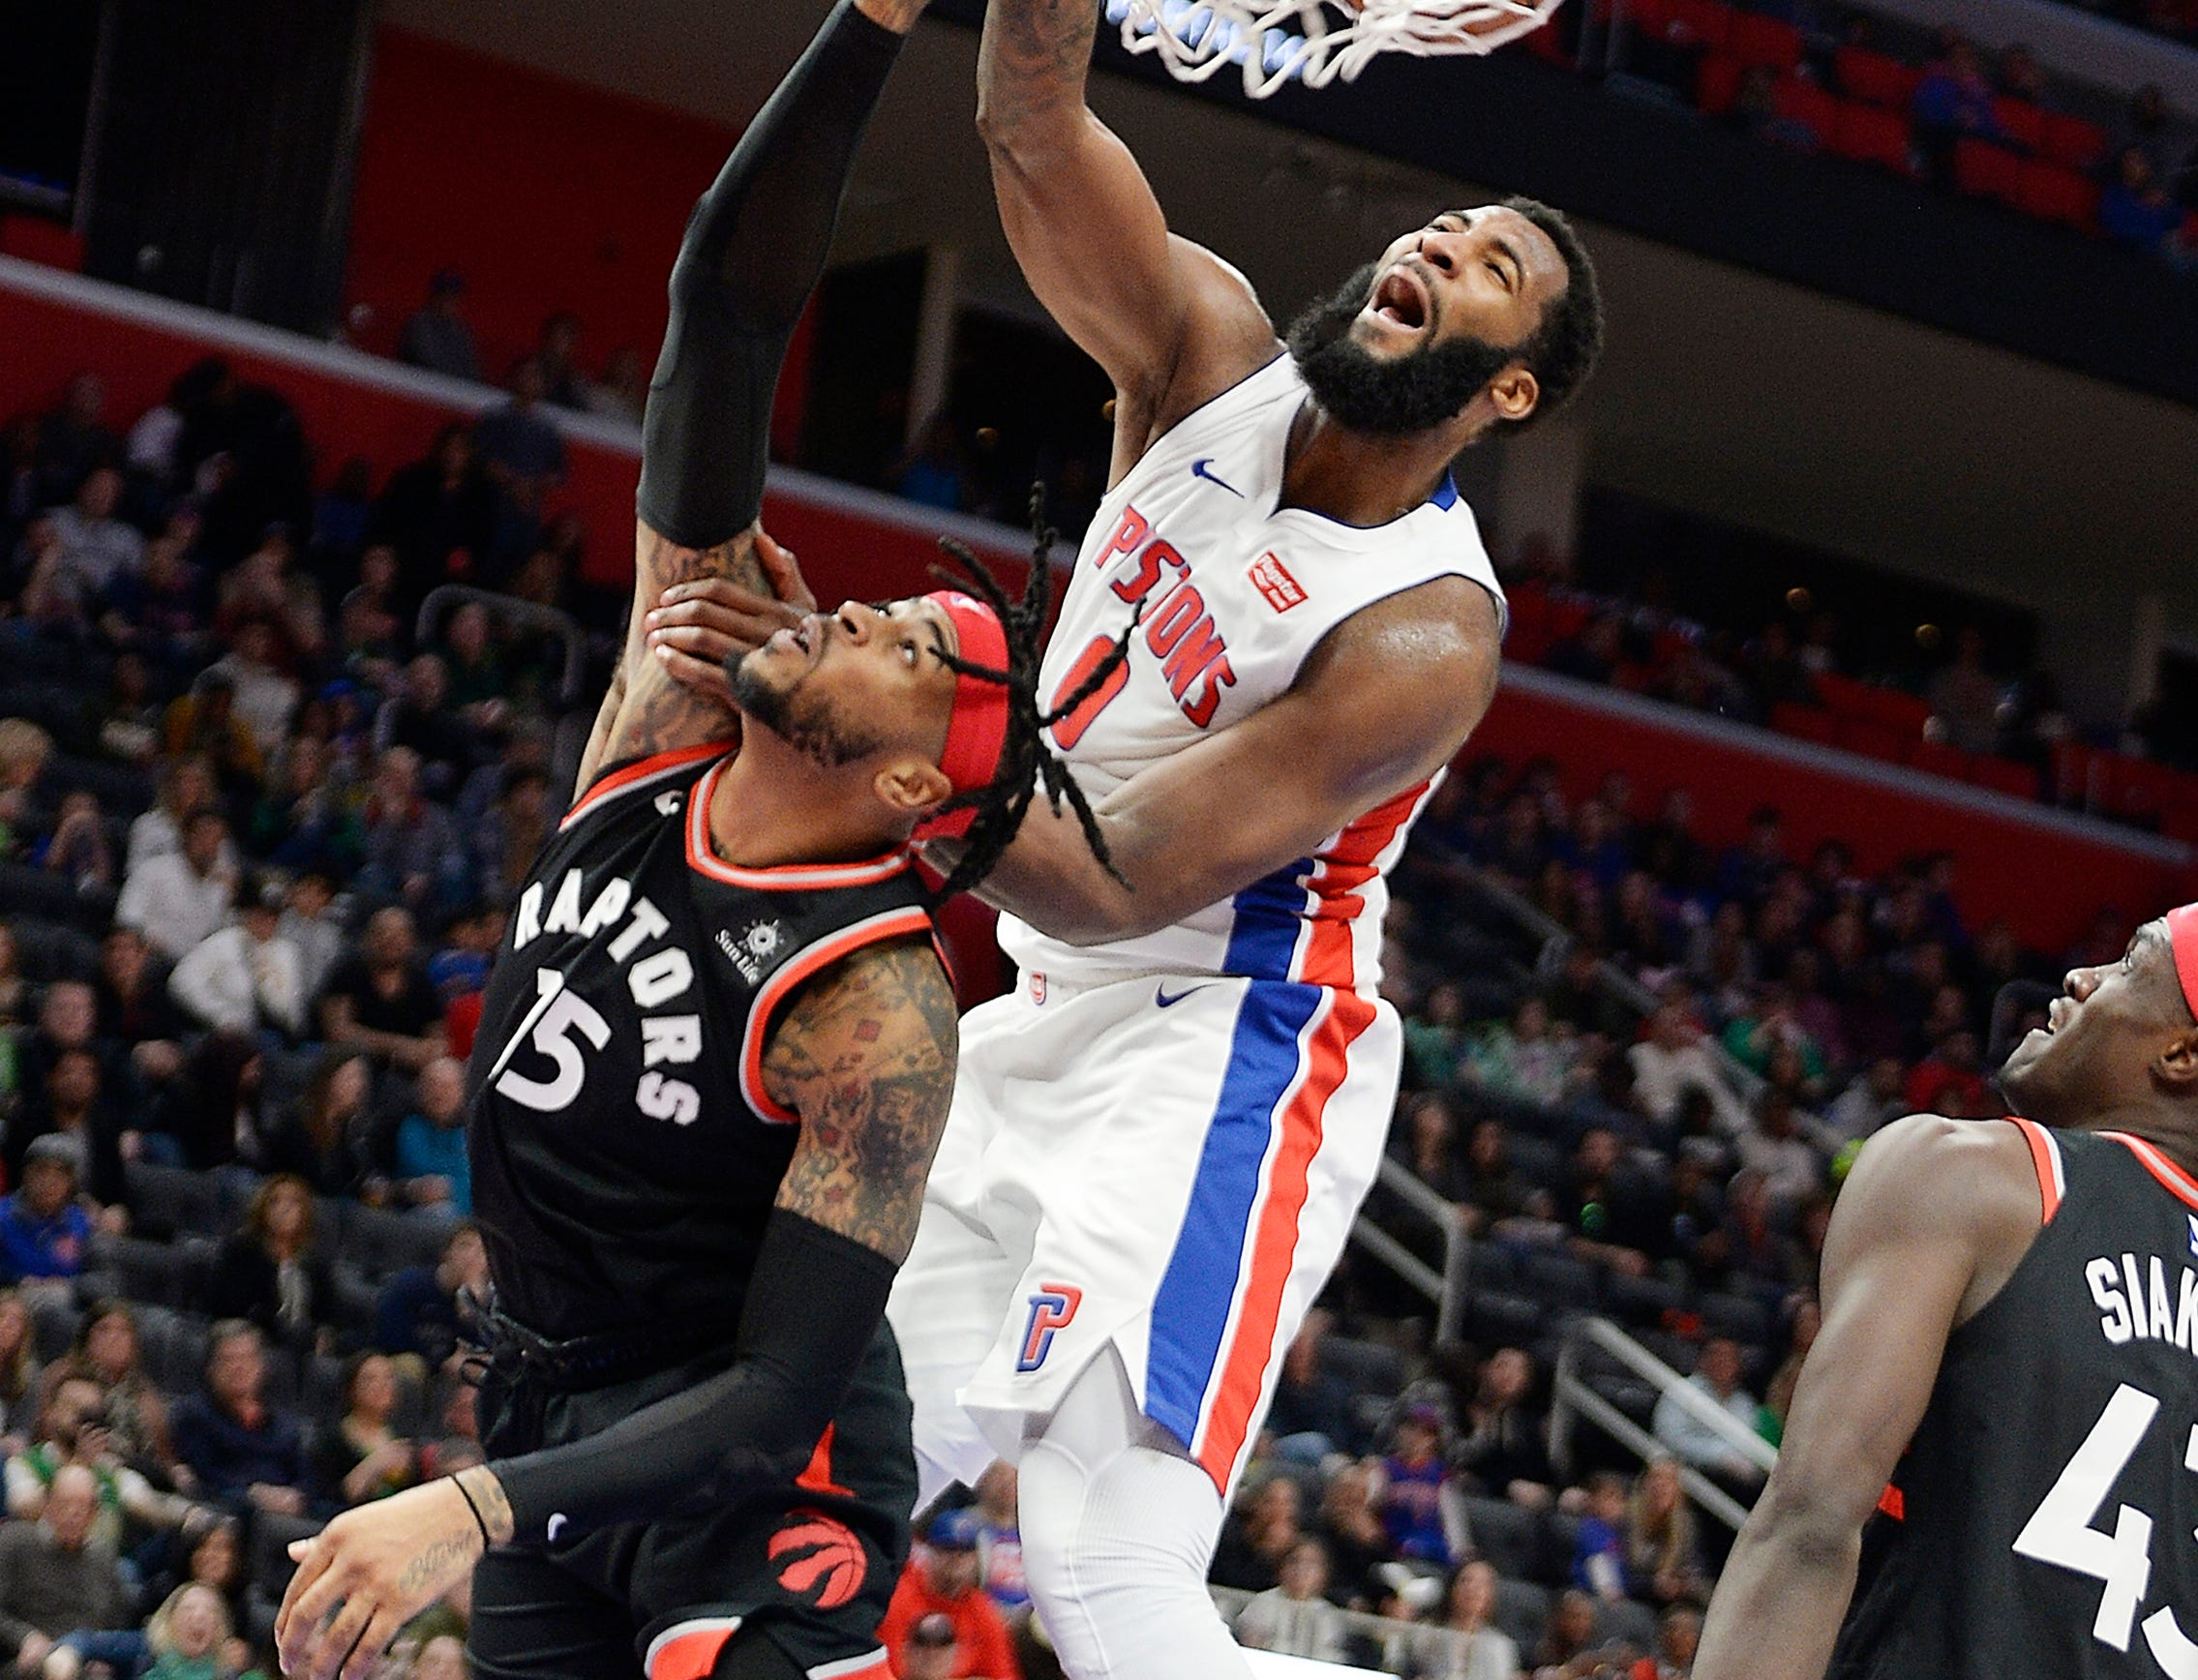 Pistons' Andre Drummond dunks over Raptors' Eric Moreland in the third quarter, Drummond had 15 points and 17 rebounds. The Pistons defeated the Raptors 110-107, Sunday, March 17, 2019 at Little Caesars Arena in Detroit, Michigan.